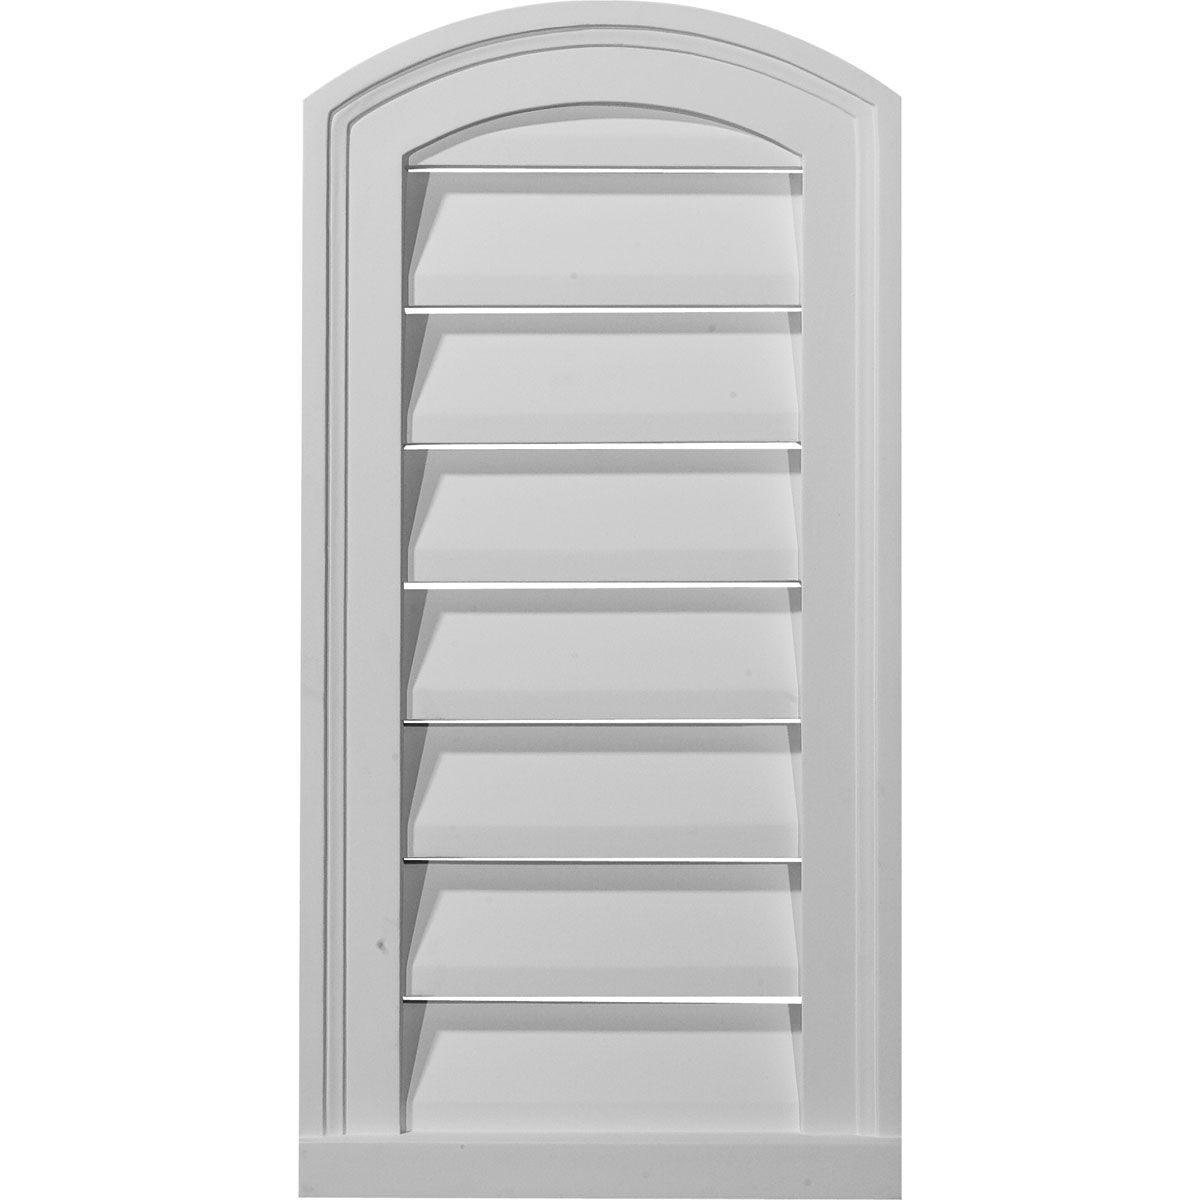 Lv273843 Vinyl Window Shutters Exterior Gable Vents Ekena Millwork Millwork